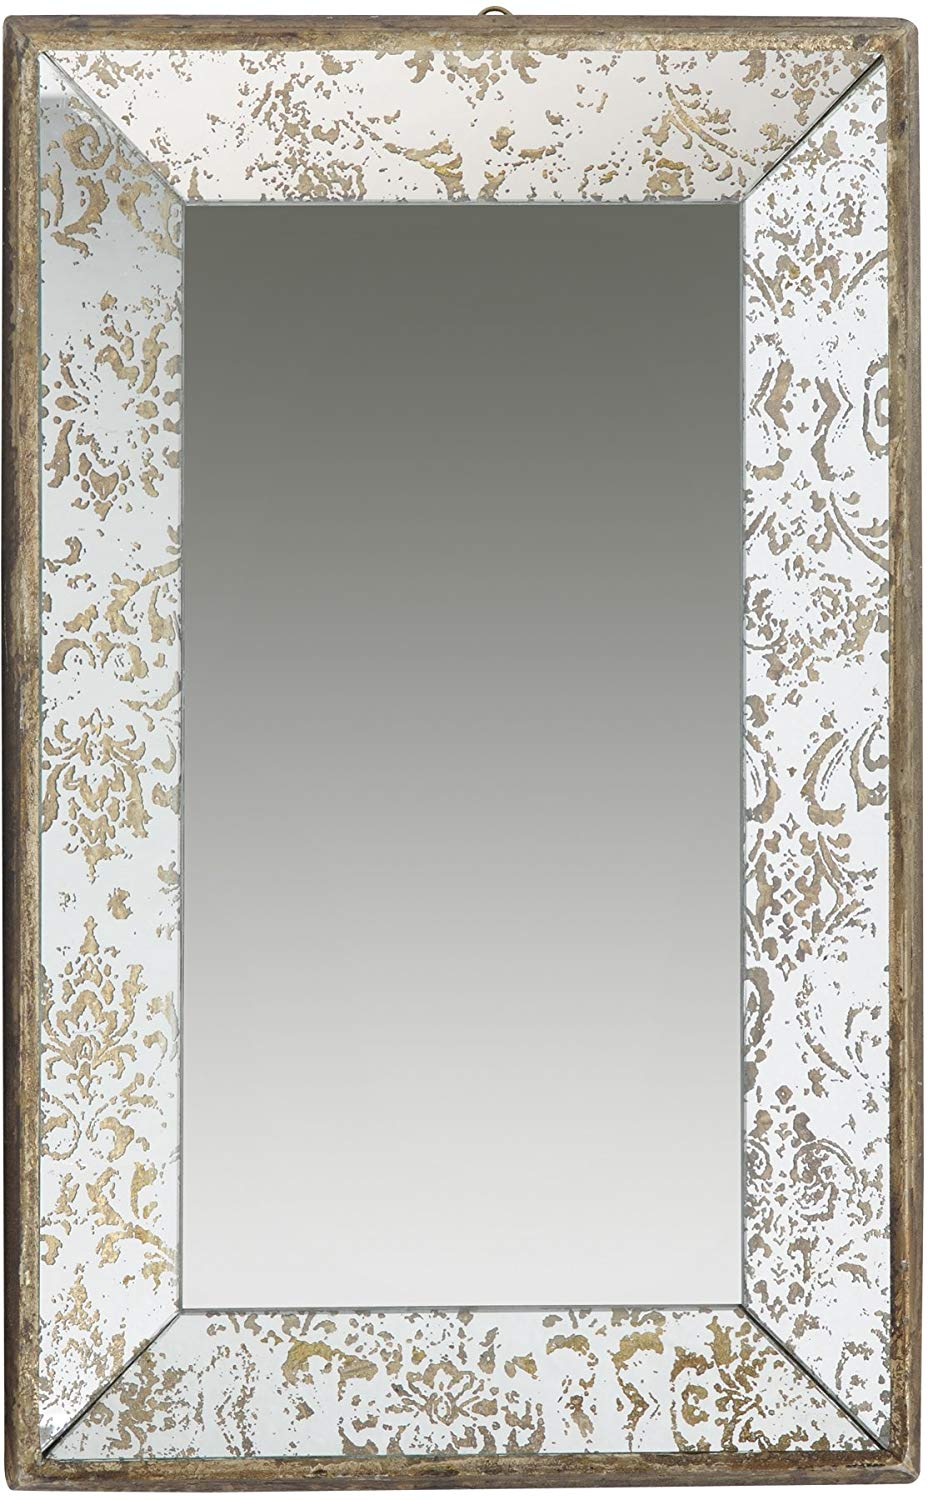 72 inch wall mirror wayfair get quotations ab home 31500 antique style frameless wall mirror tray 20 by 12inch cheap 72 inch mirror find deals on line at